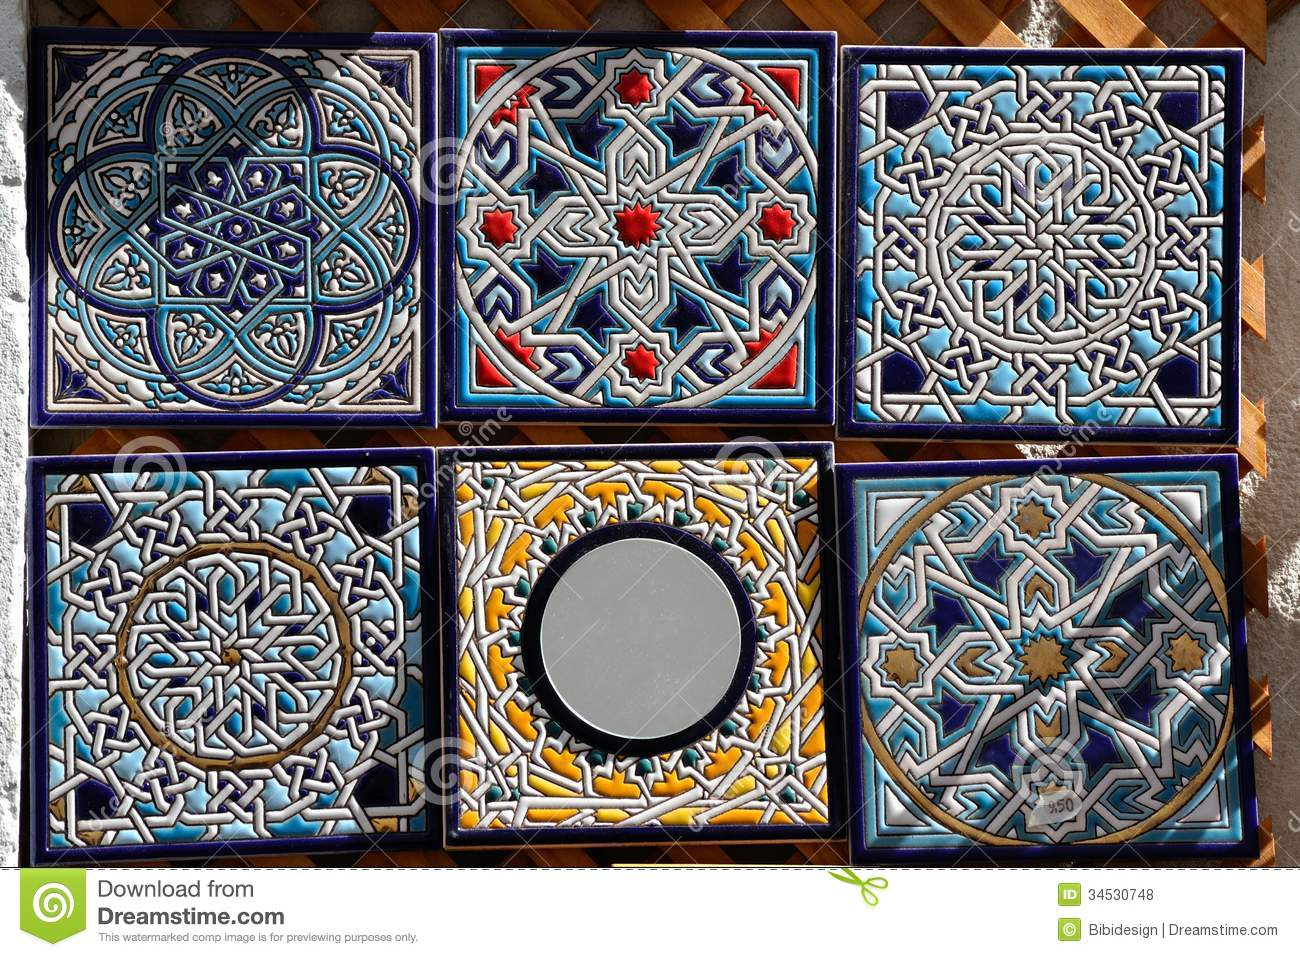 Decorative Hand Painted Ceramic Tiles For Sale Royalty Free Stock Photos Image 34530748